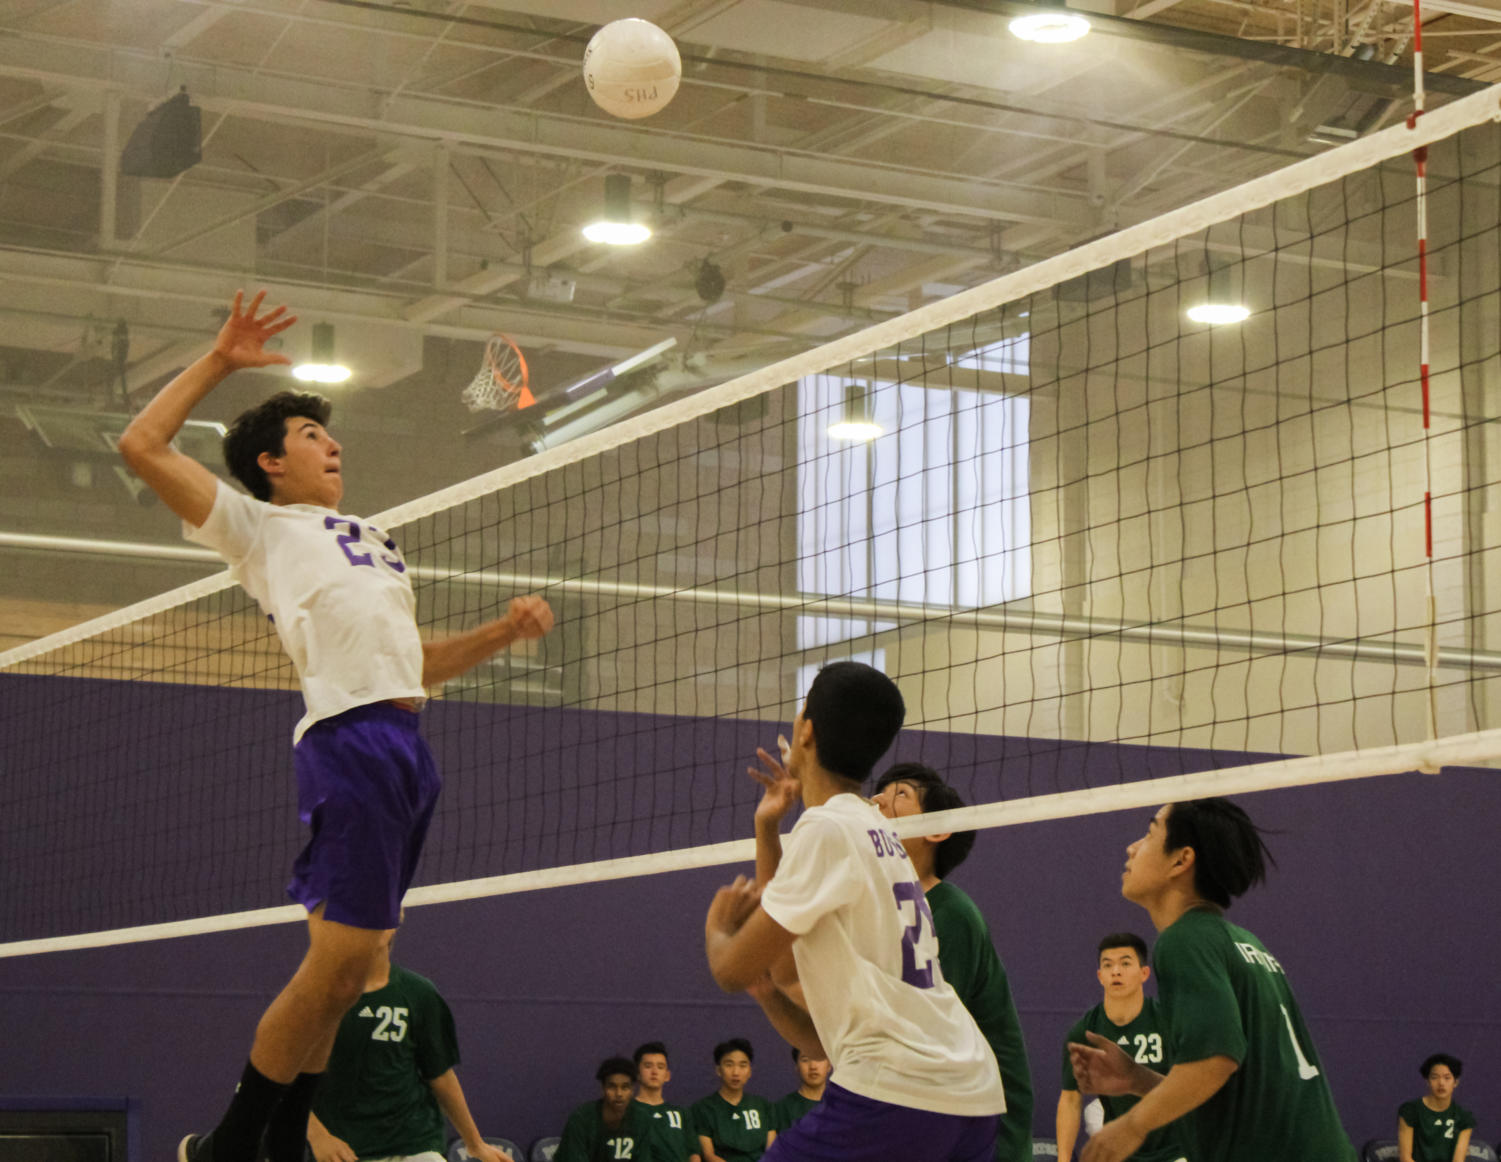 Kaveh Wojtowich returns the ball to the opponents with a spike and scores a point for the team.